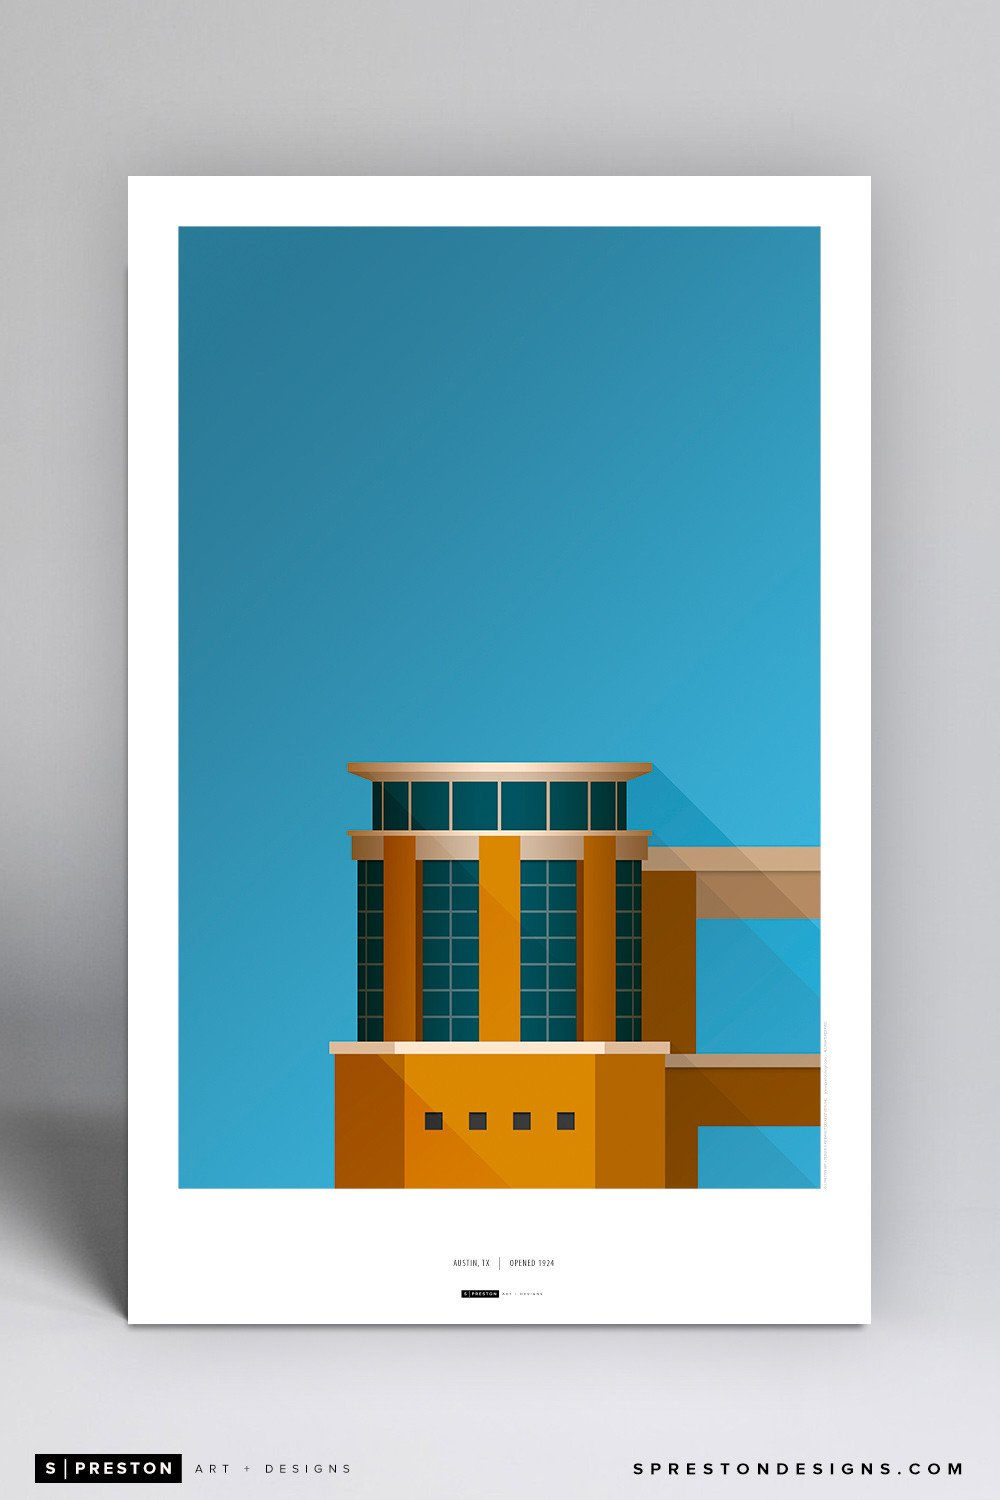 Minimalist Darrell K Royal Poster Print - University of Texas - S. Preston Art + Designs